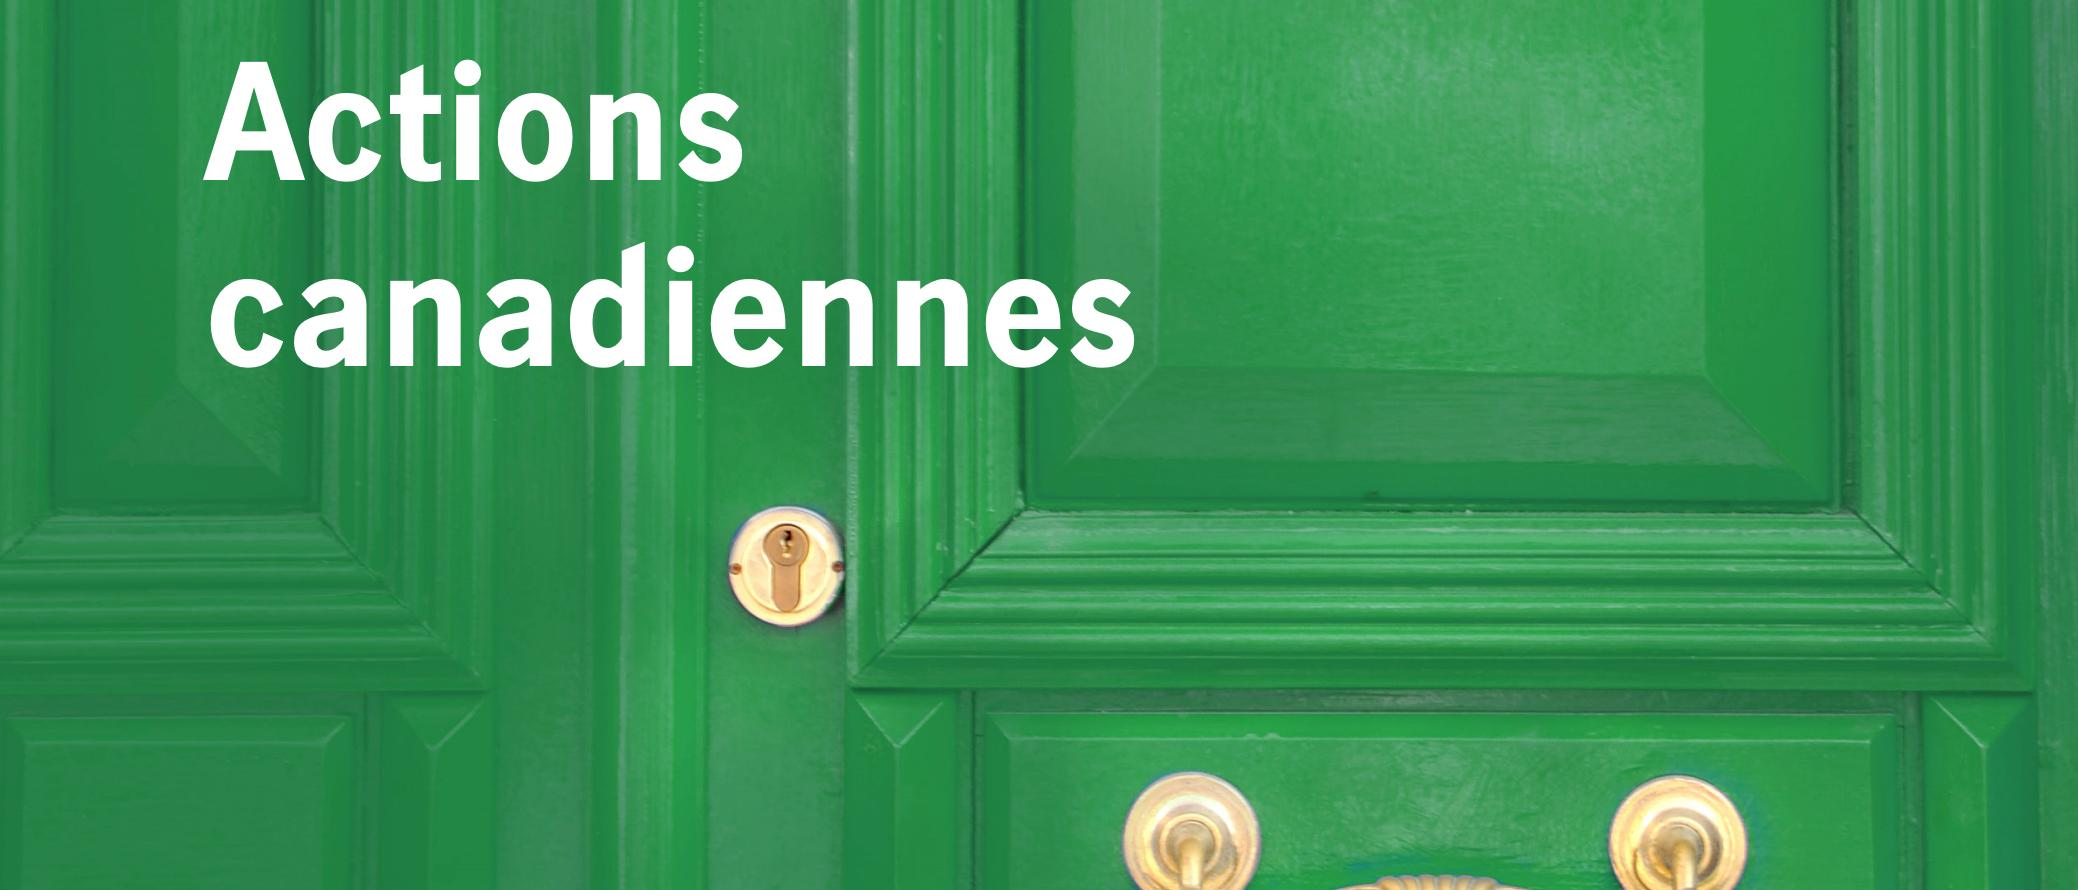 Actions canadiennes Thumbnail